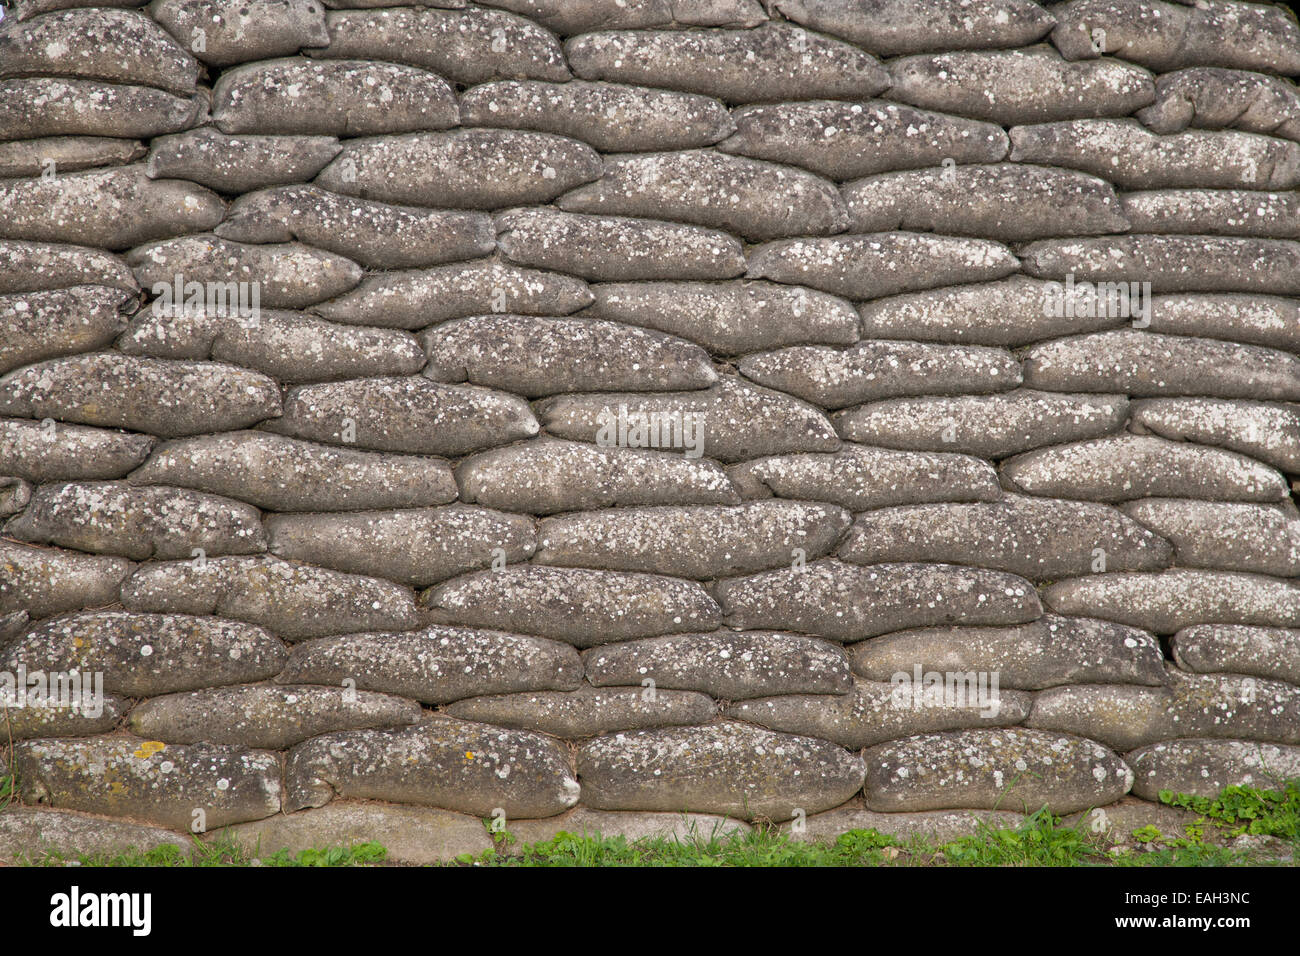 One of the most dangerous Belgian positions on the Western Front during WWI, the trench of death - Stock Image